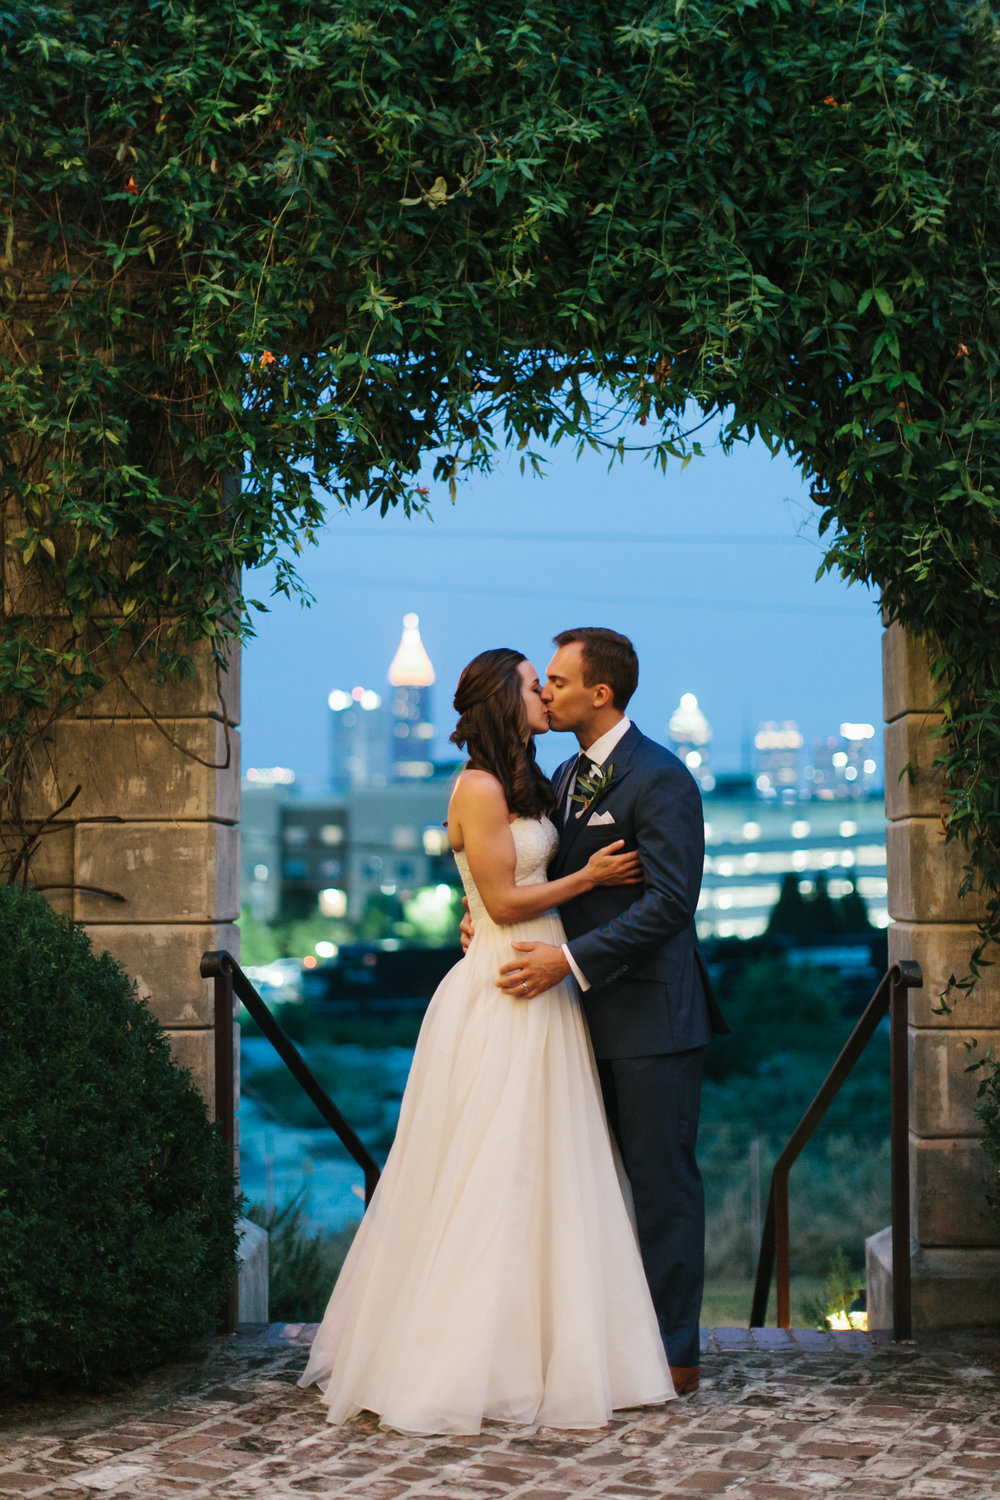 Meghan & Colin | Atlanta, Georgia Wedding | Summerour Studios | Victoria Austin Designs